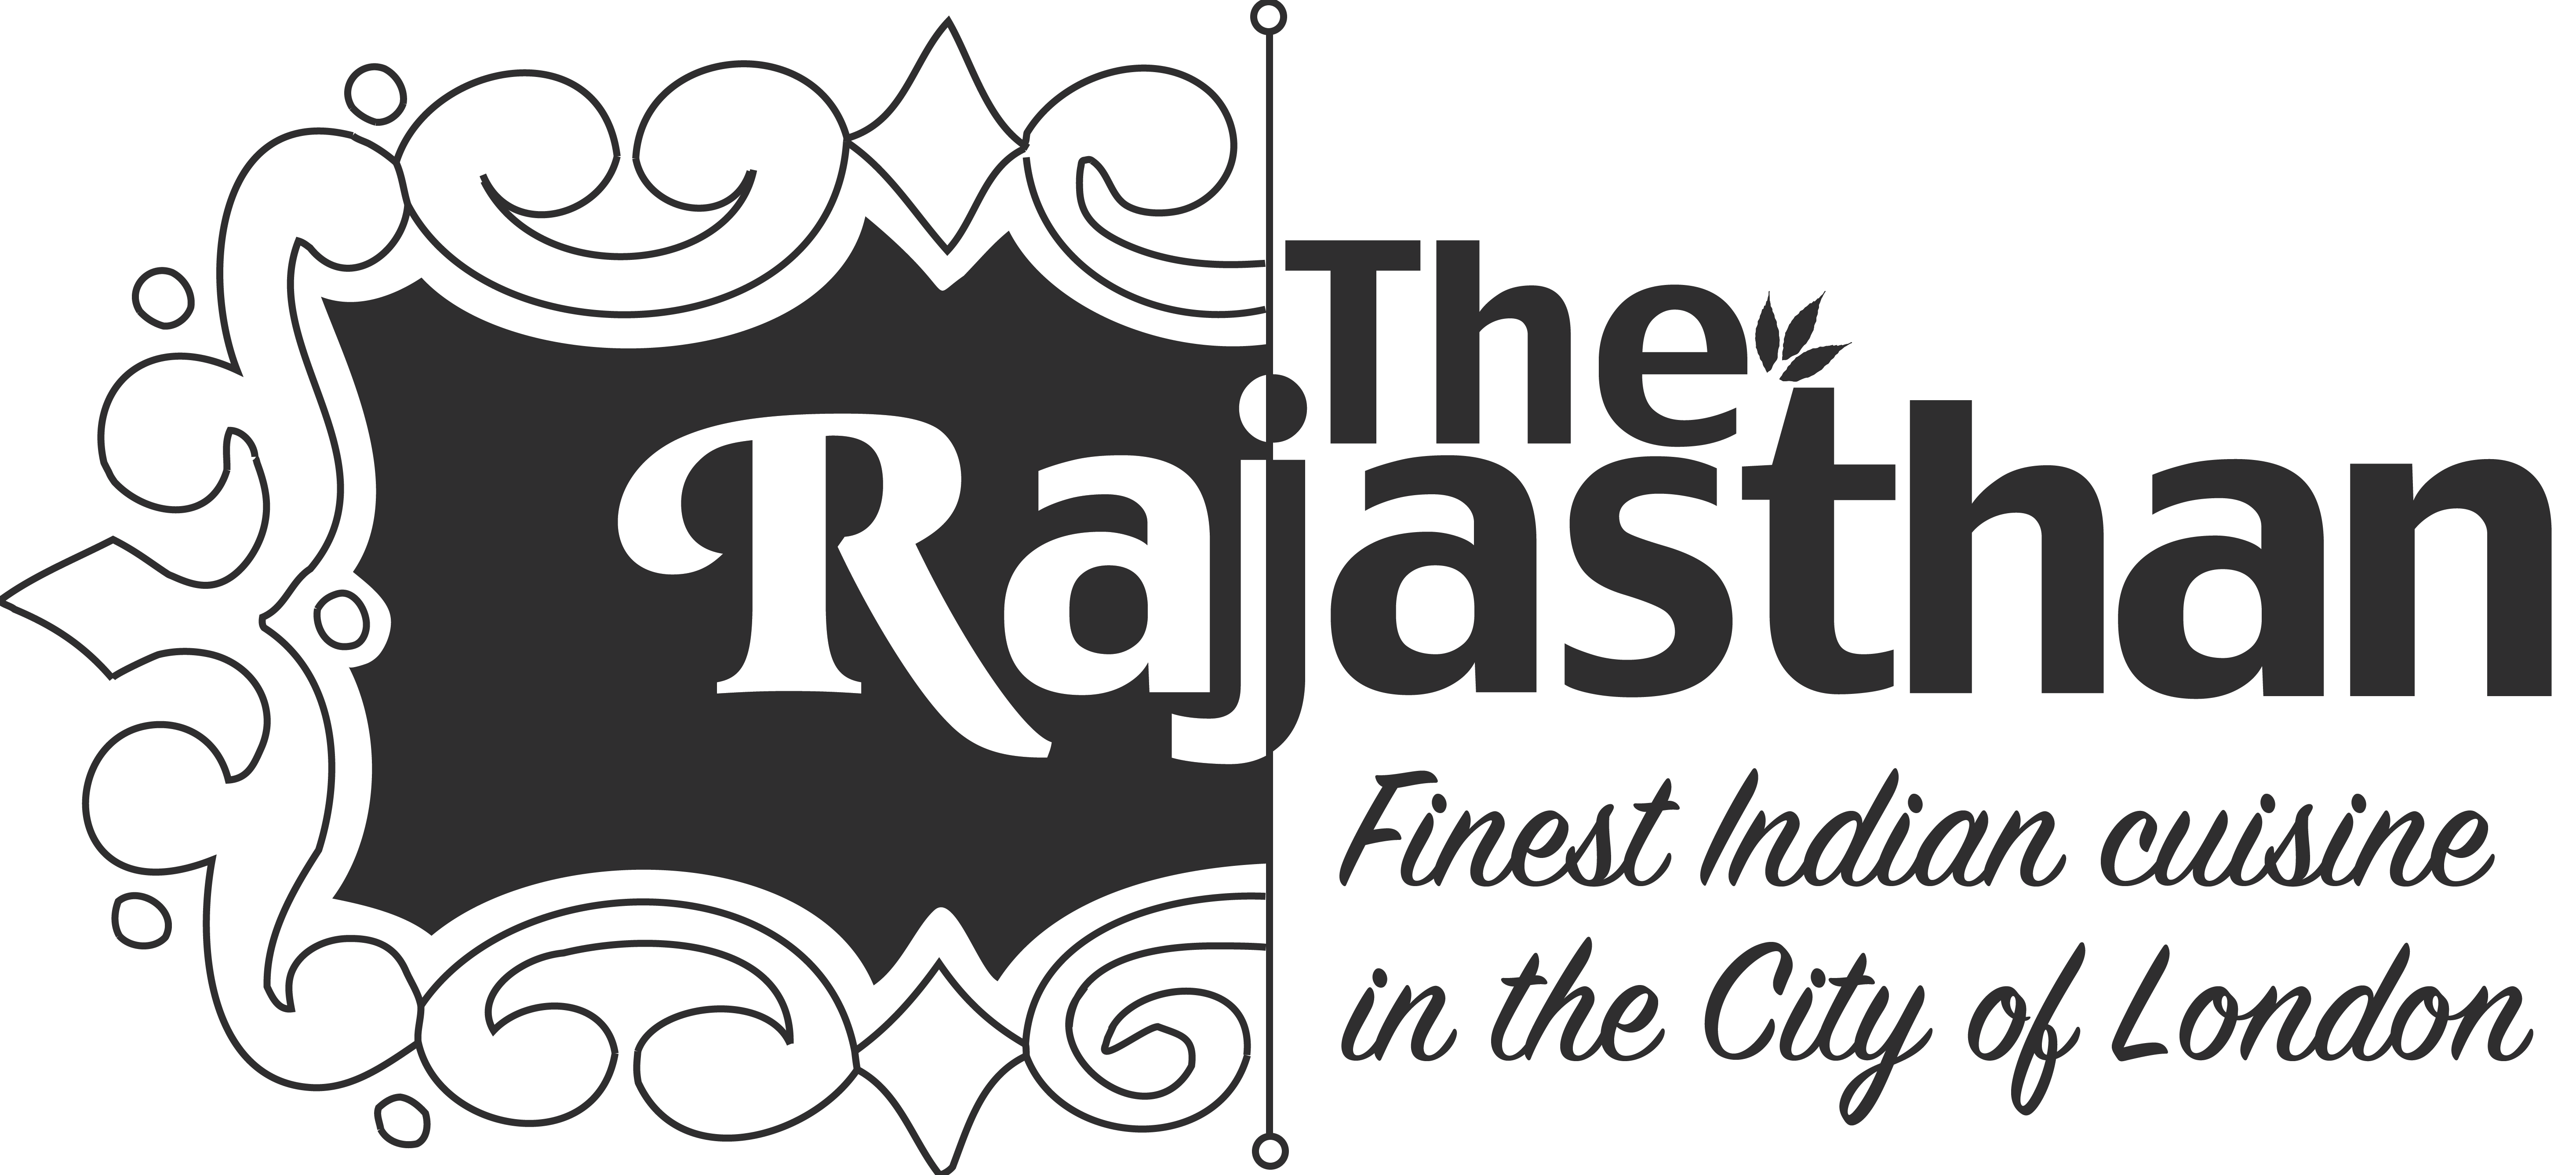 The Rajasthan -II India Street, London